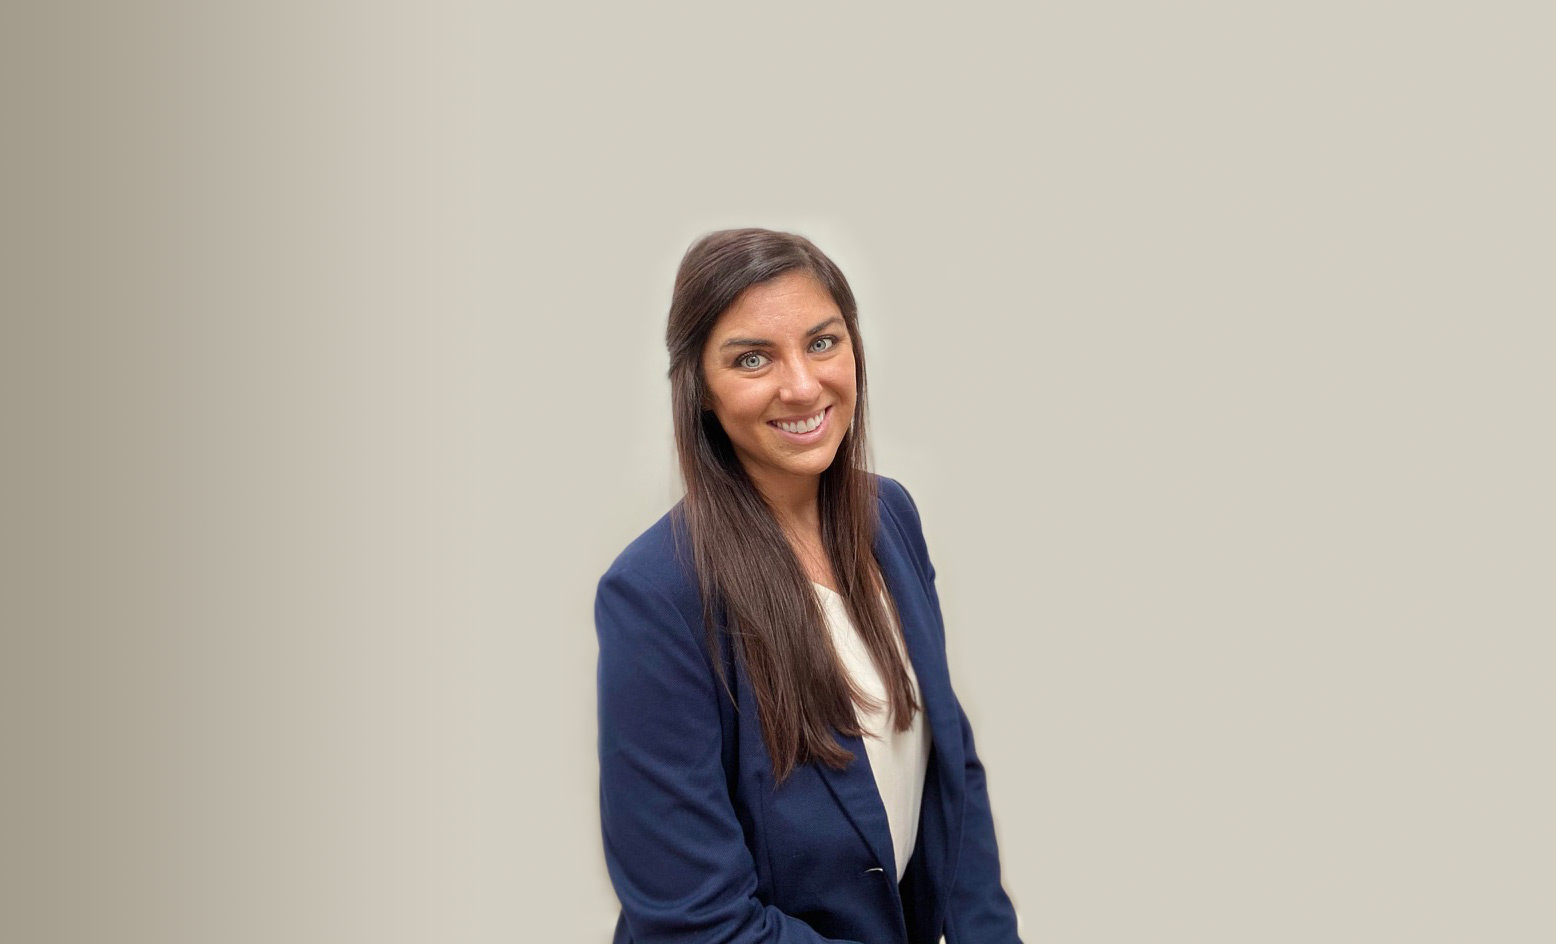 3 Q's Headshot of Danielle Bloom - Senior Account Manager